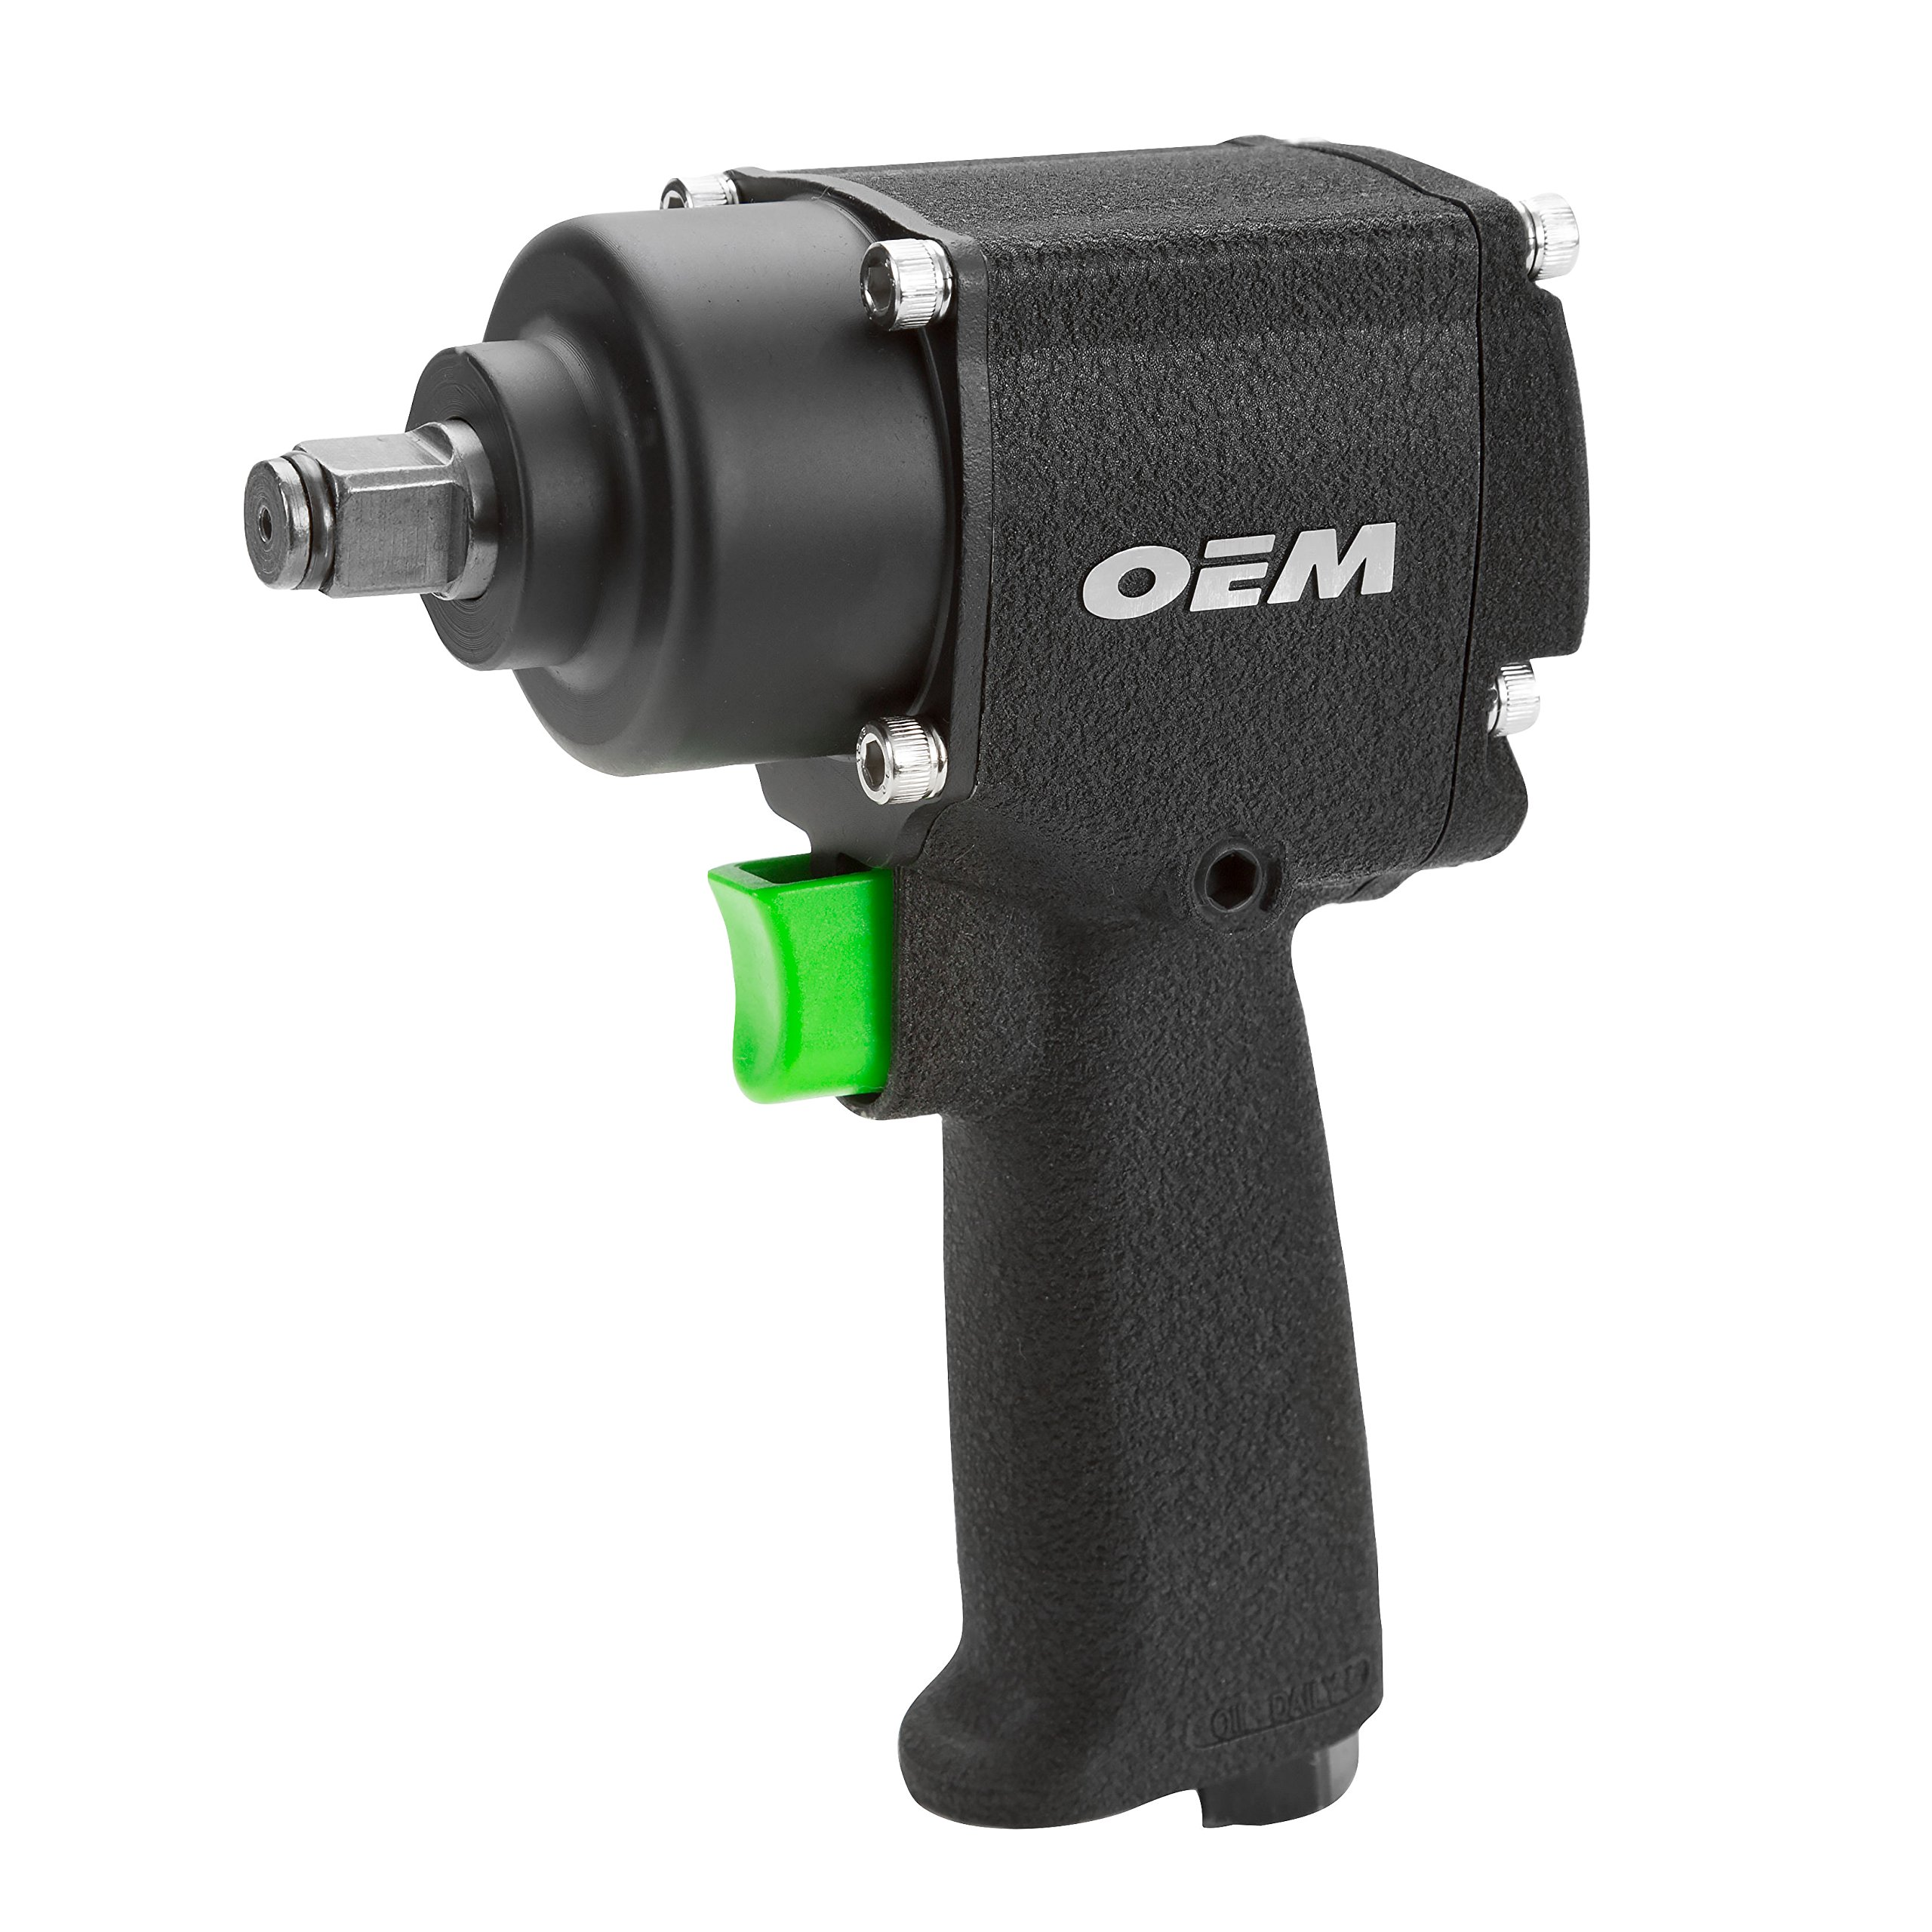 OEMTOOLS 24411 Mighty Compact 3/8'' Drive Impact Wrench